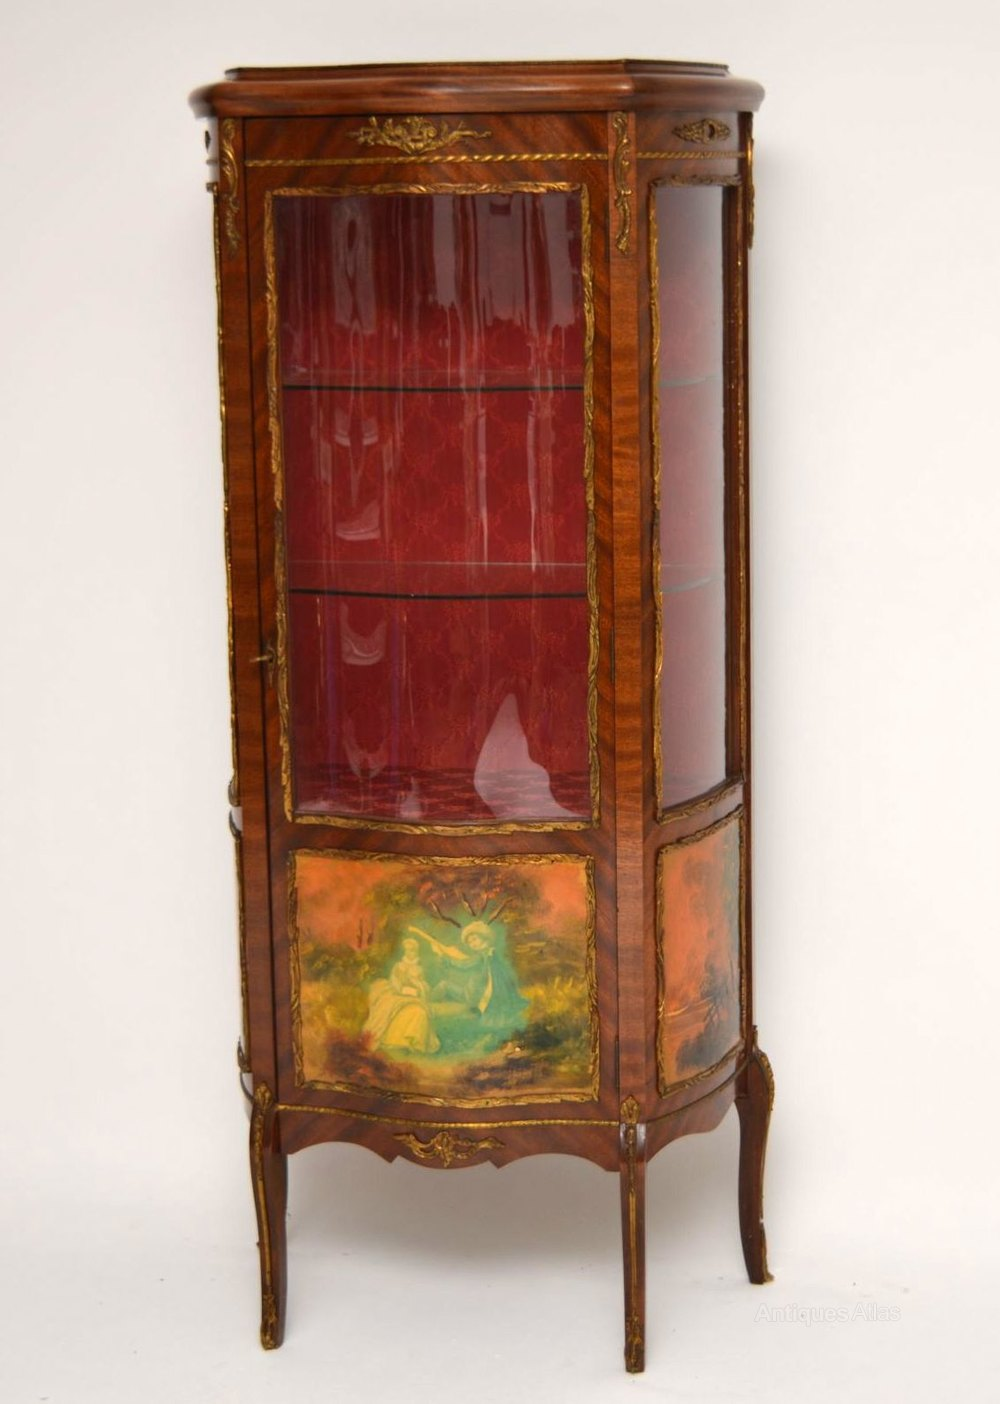 Antique French Style Ormolu Display Cabinet